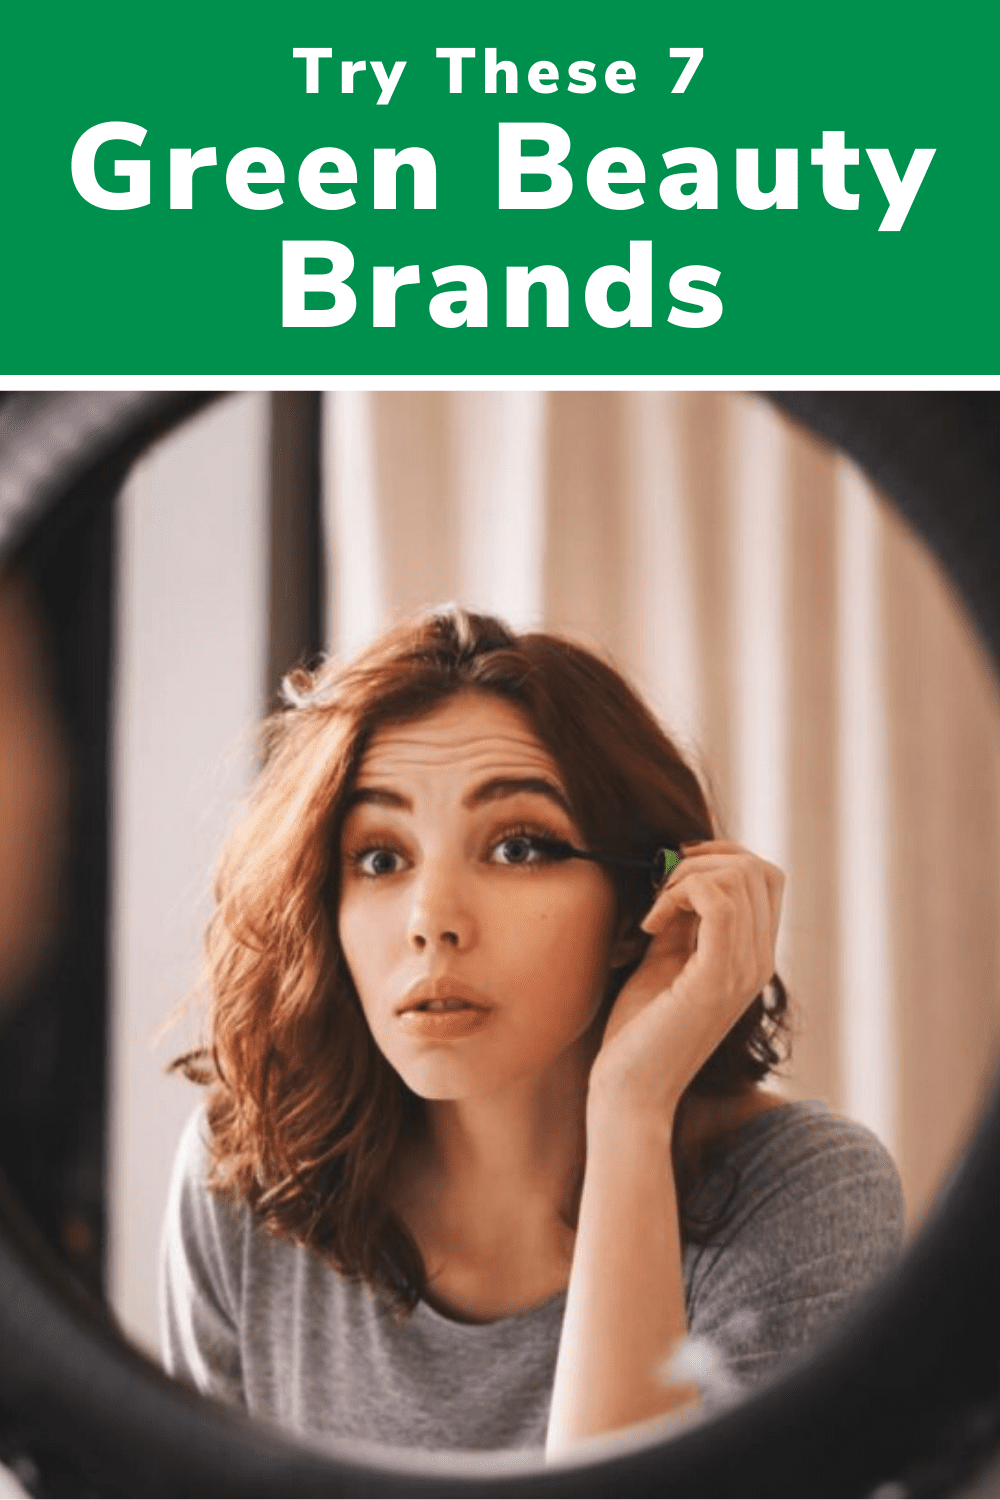 green beauty brands pin image